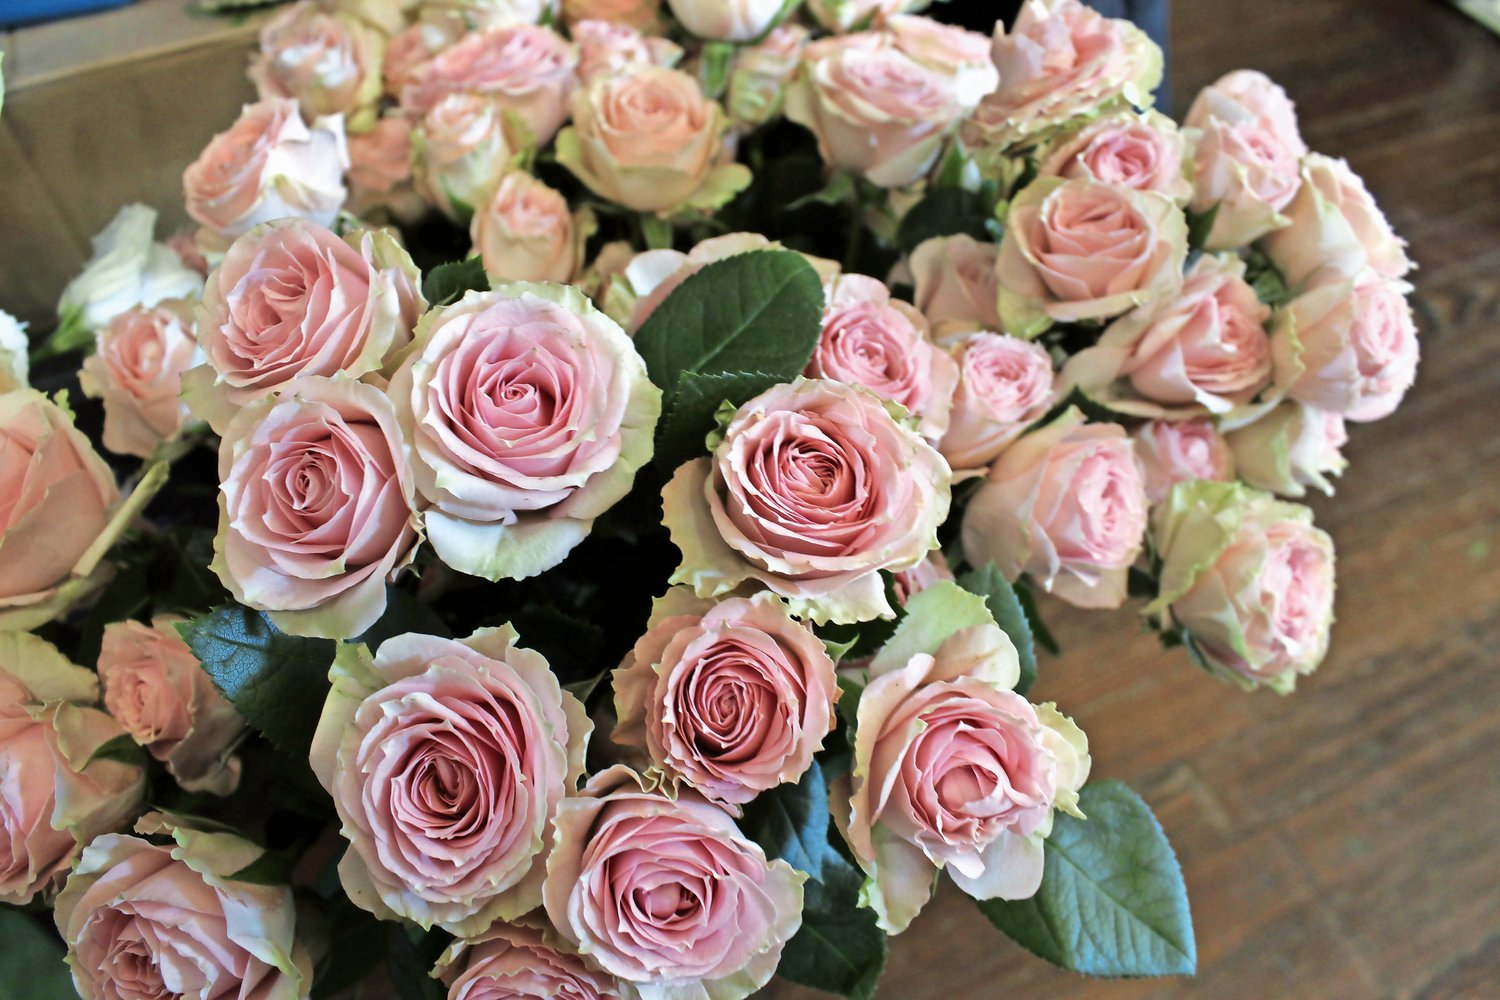 Baby pink petals make for the perfect romantic gesture.